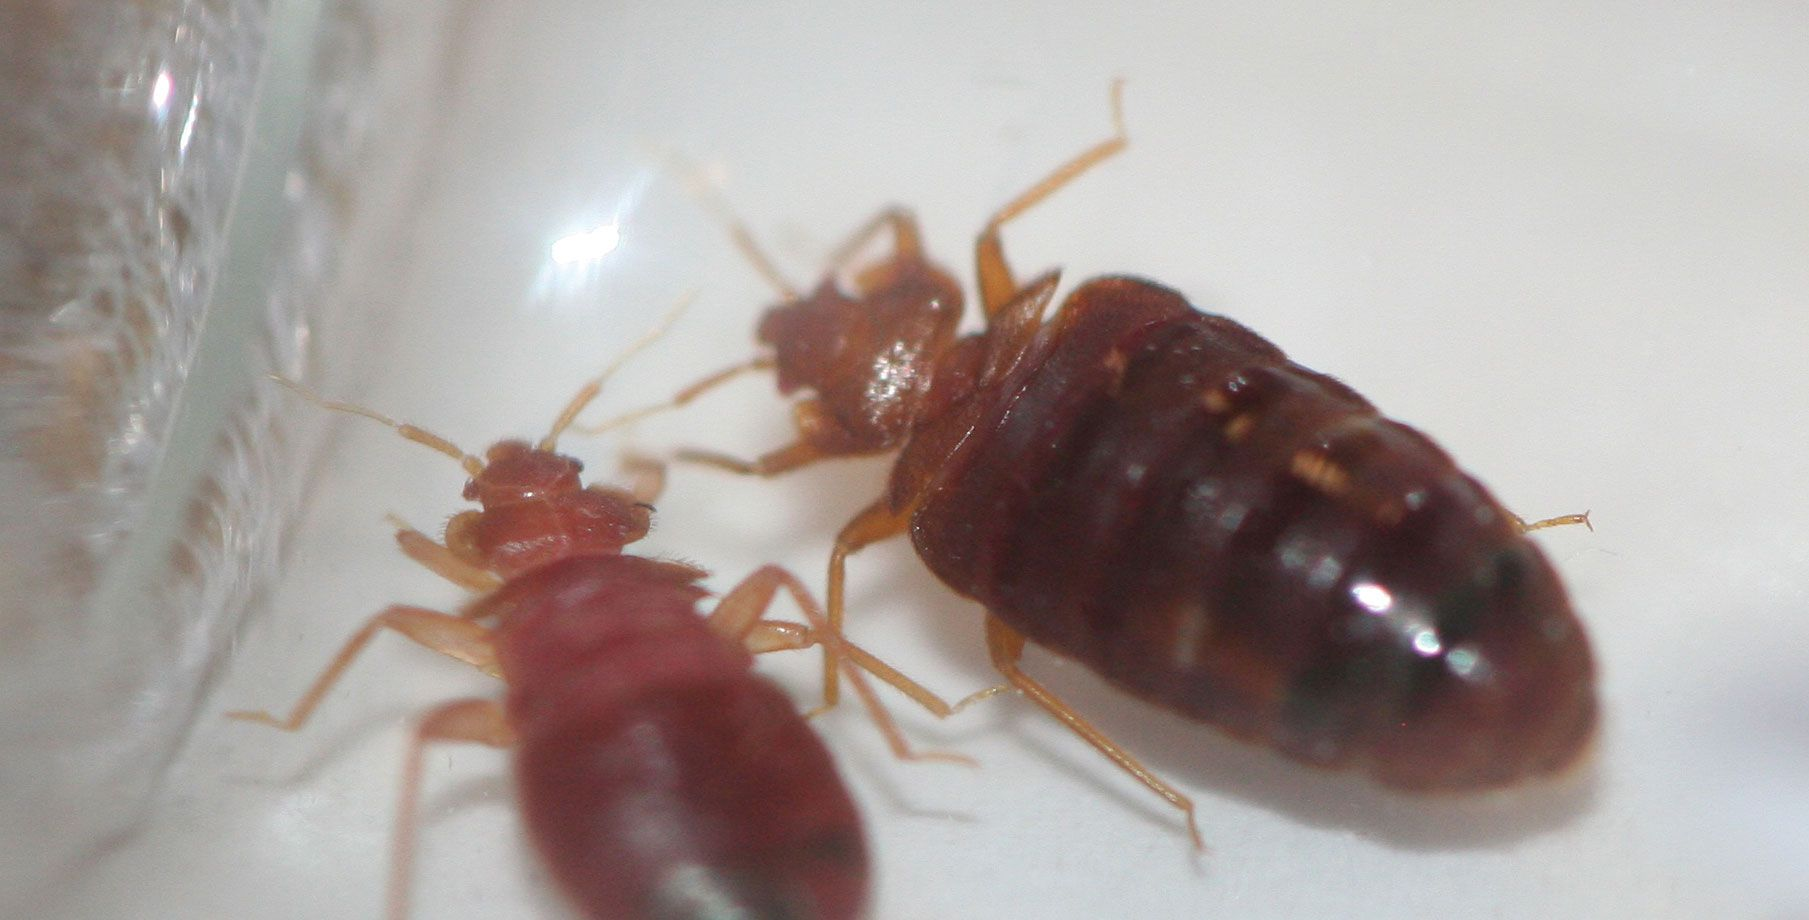 Bed Bug Facts Bed bugs treatment, Bed bugs, Rid of bed bugs